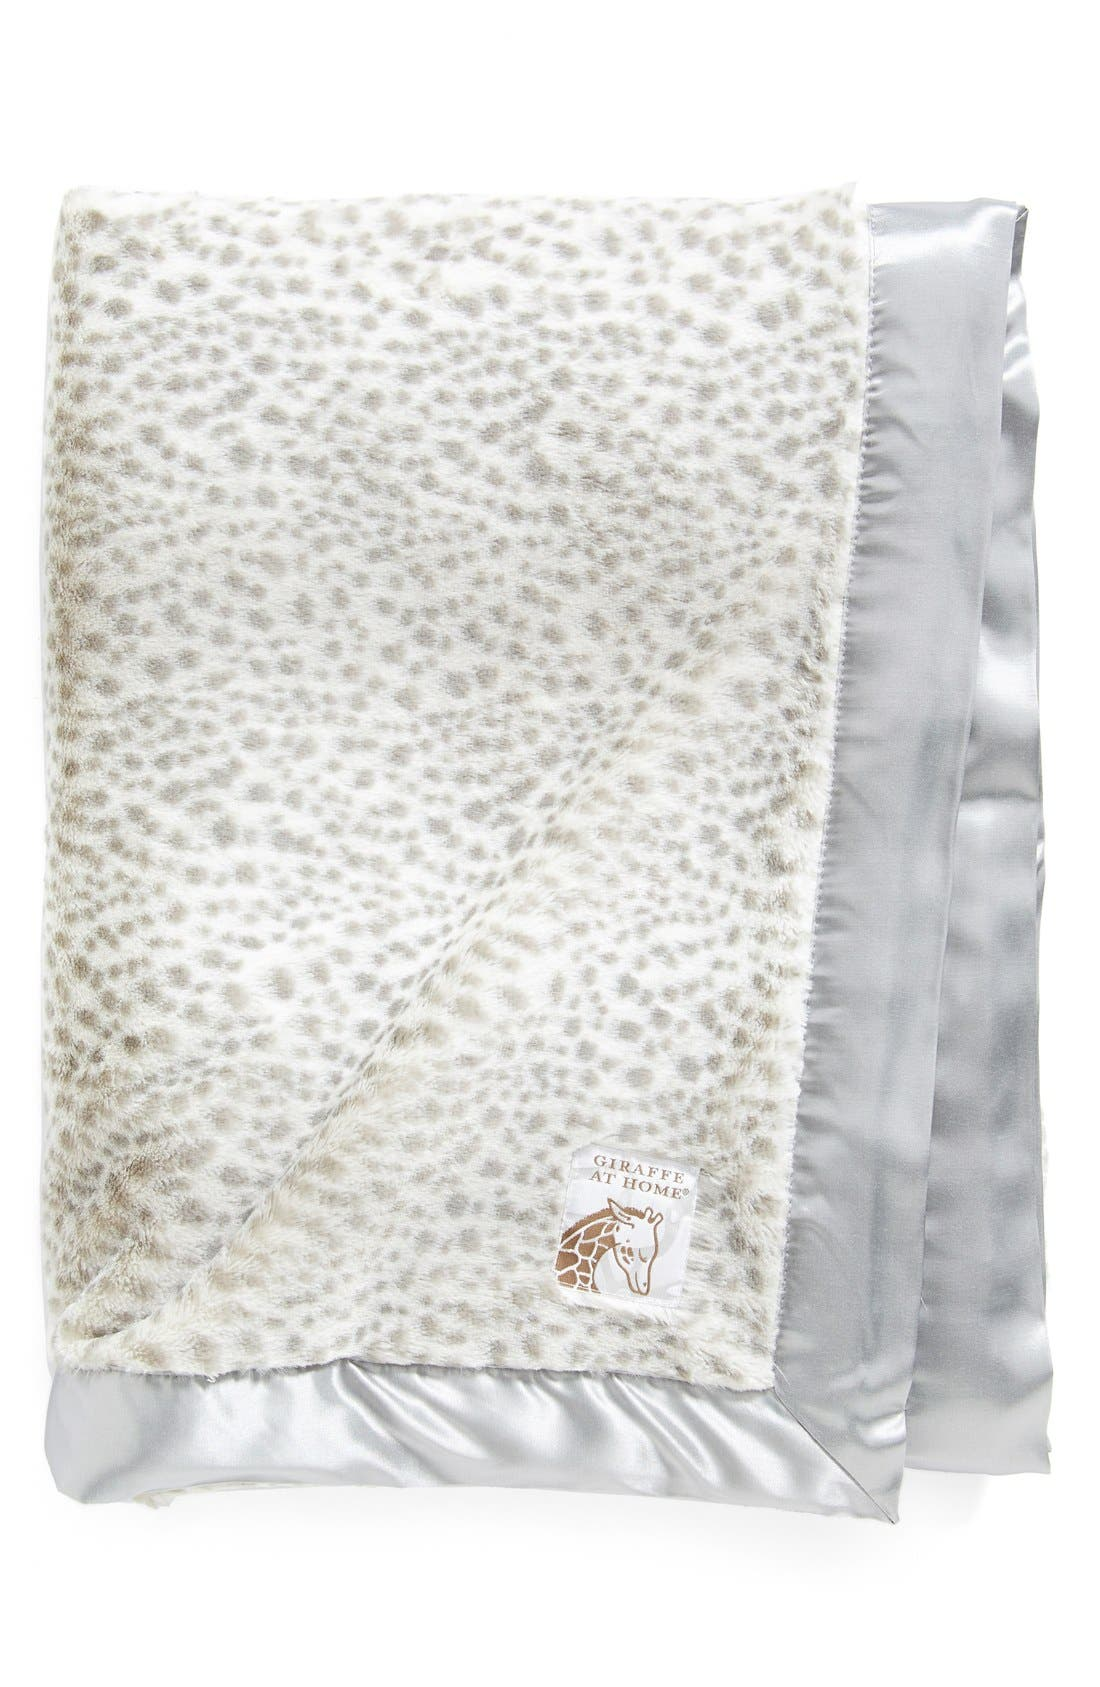 Giraffe at Home 'Luxe Snow Leopard' Faux Fur Throw